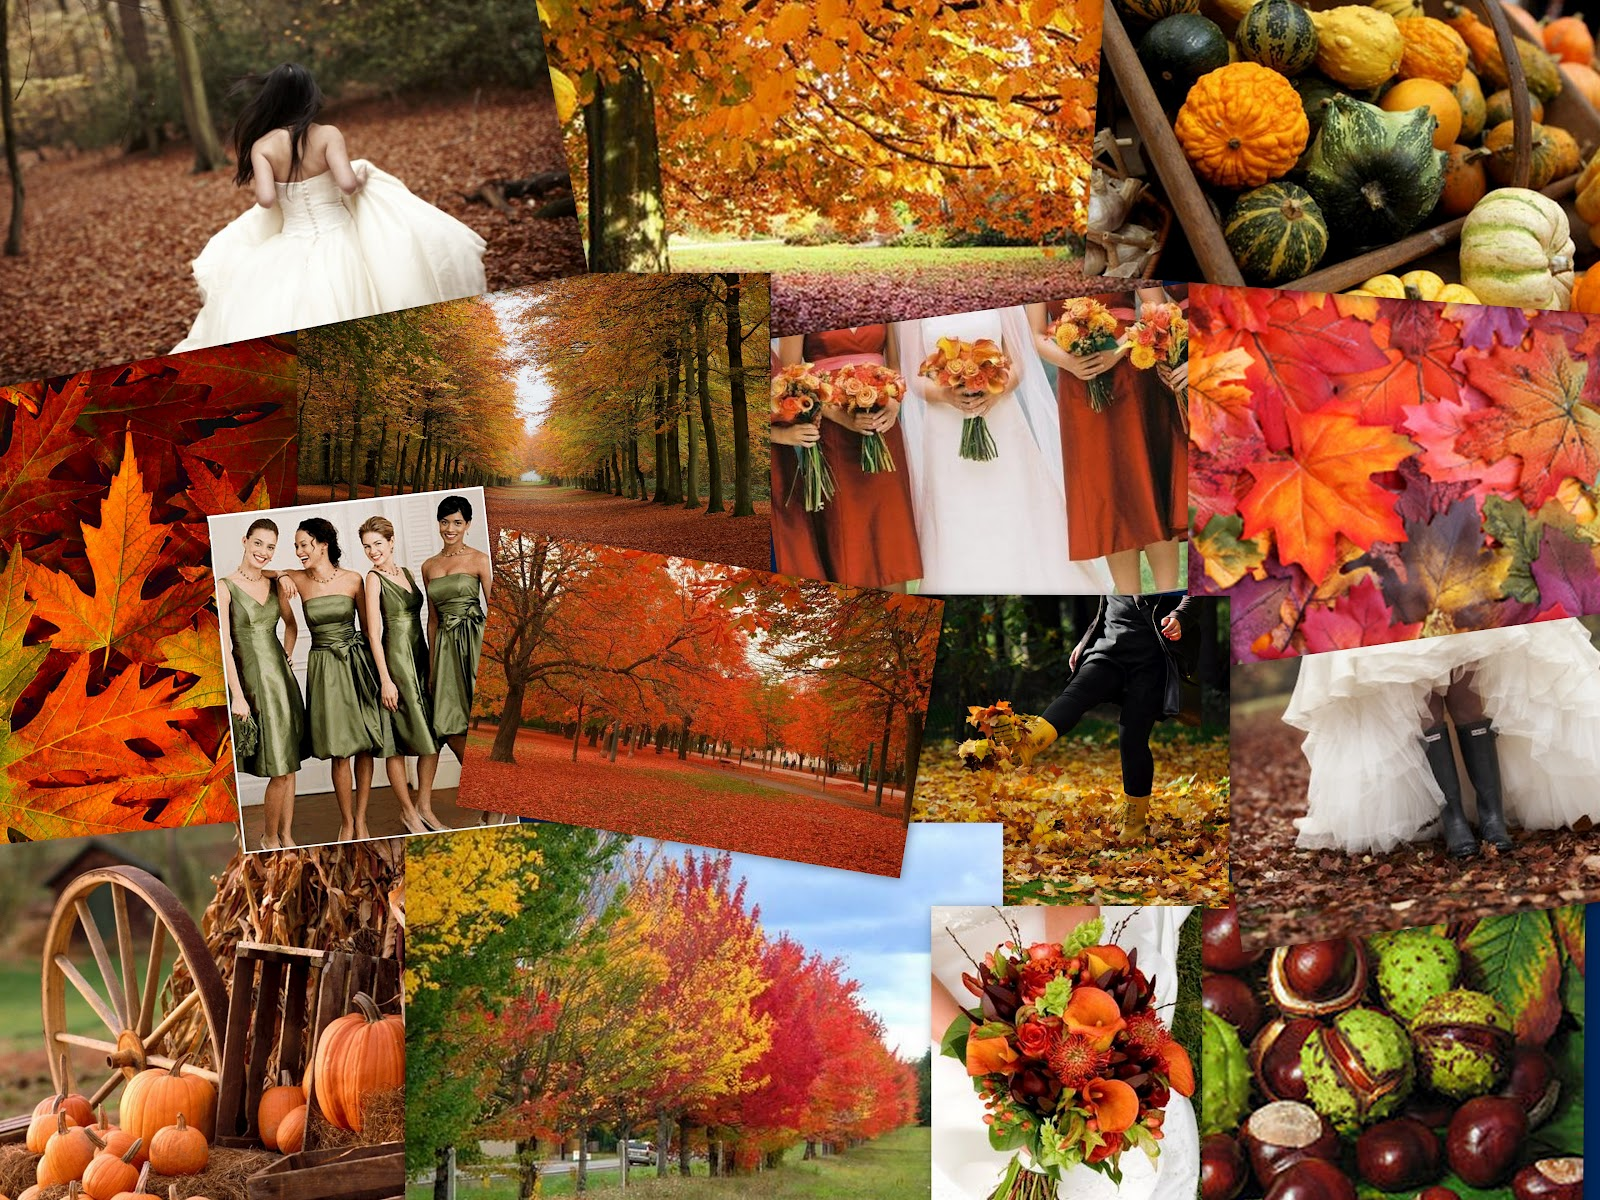 Wallpaper Images Of Fall Trees Lined Lake Autumn Inspiration Wedding Planner Bournemouth Dorset